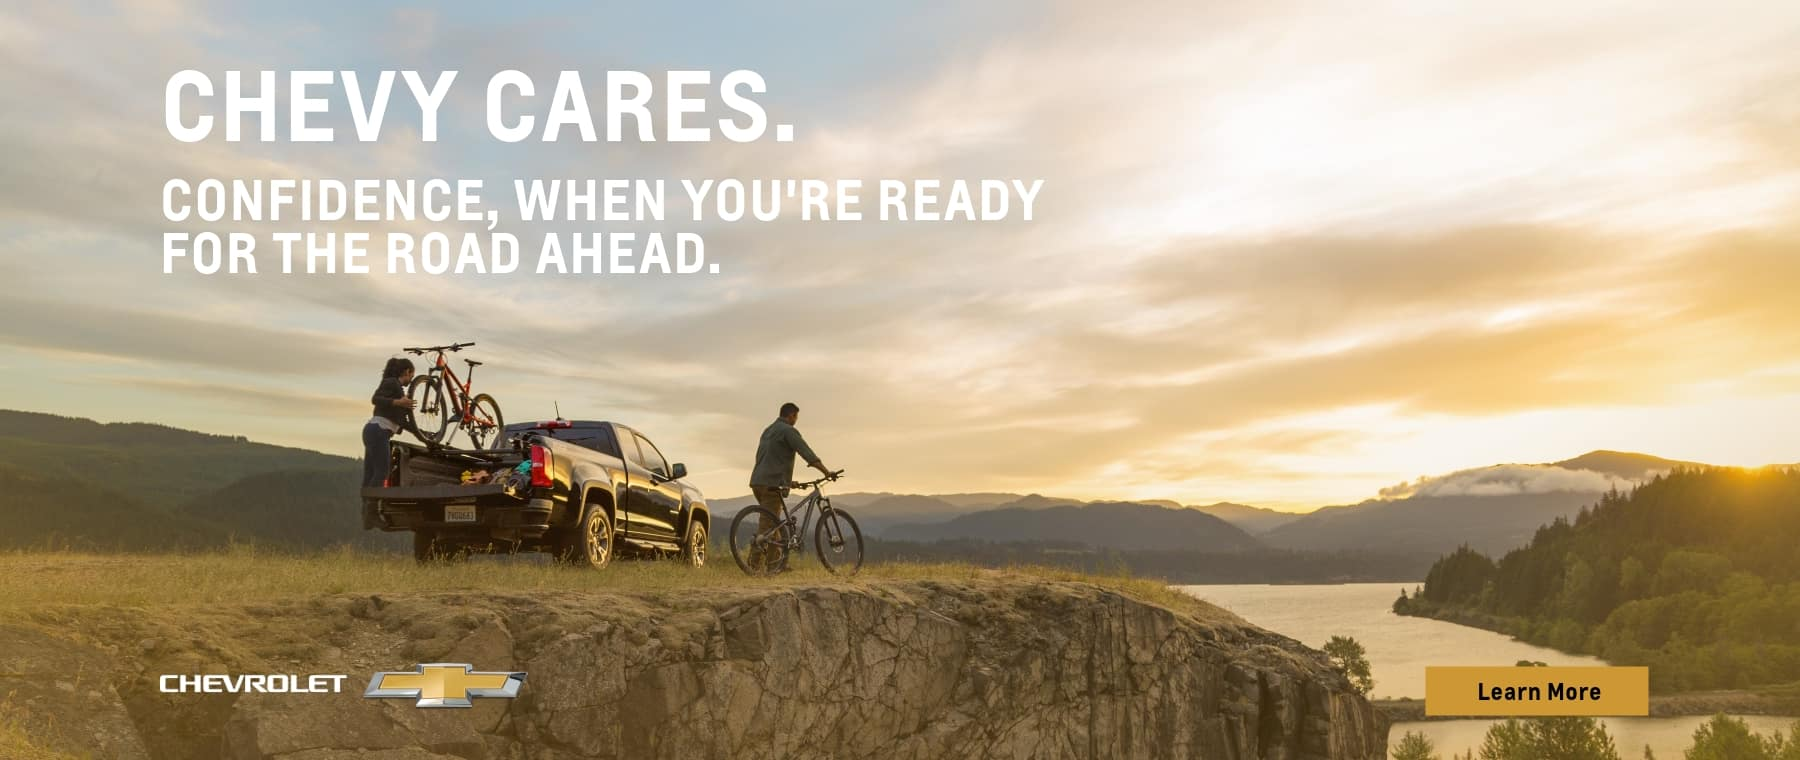 Chevy Cares Banner